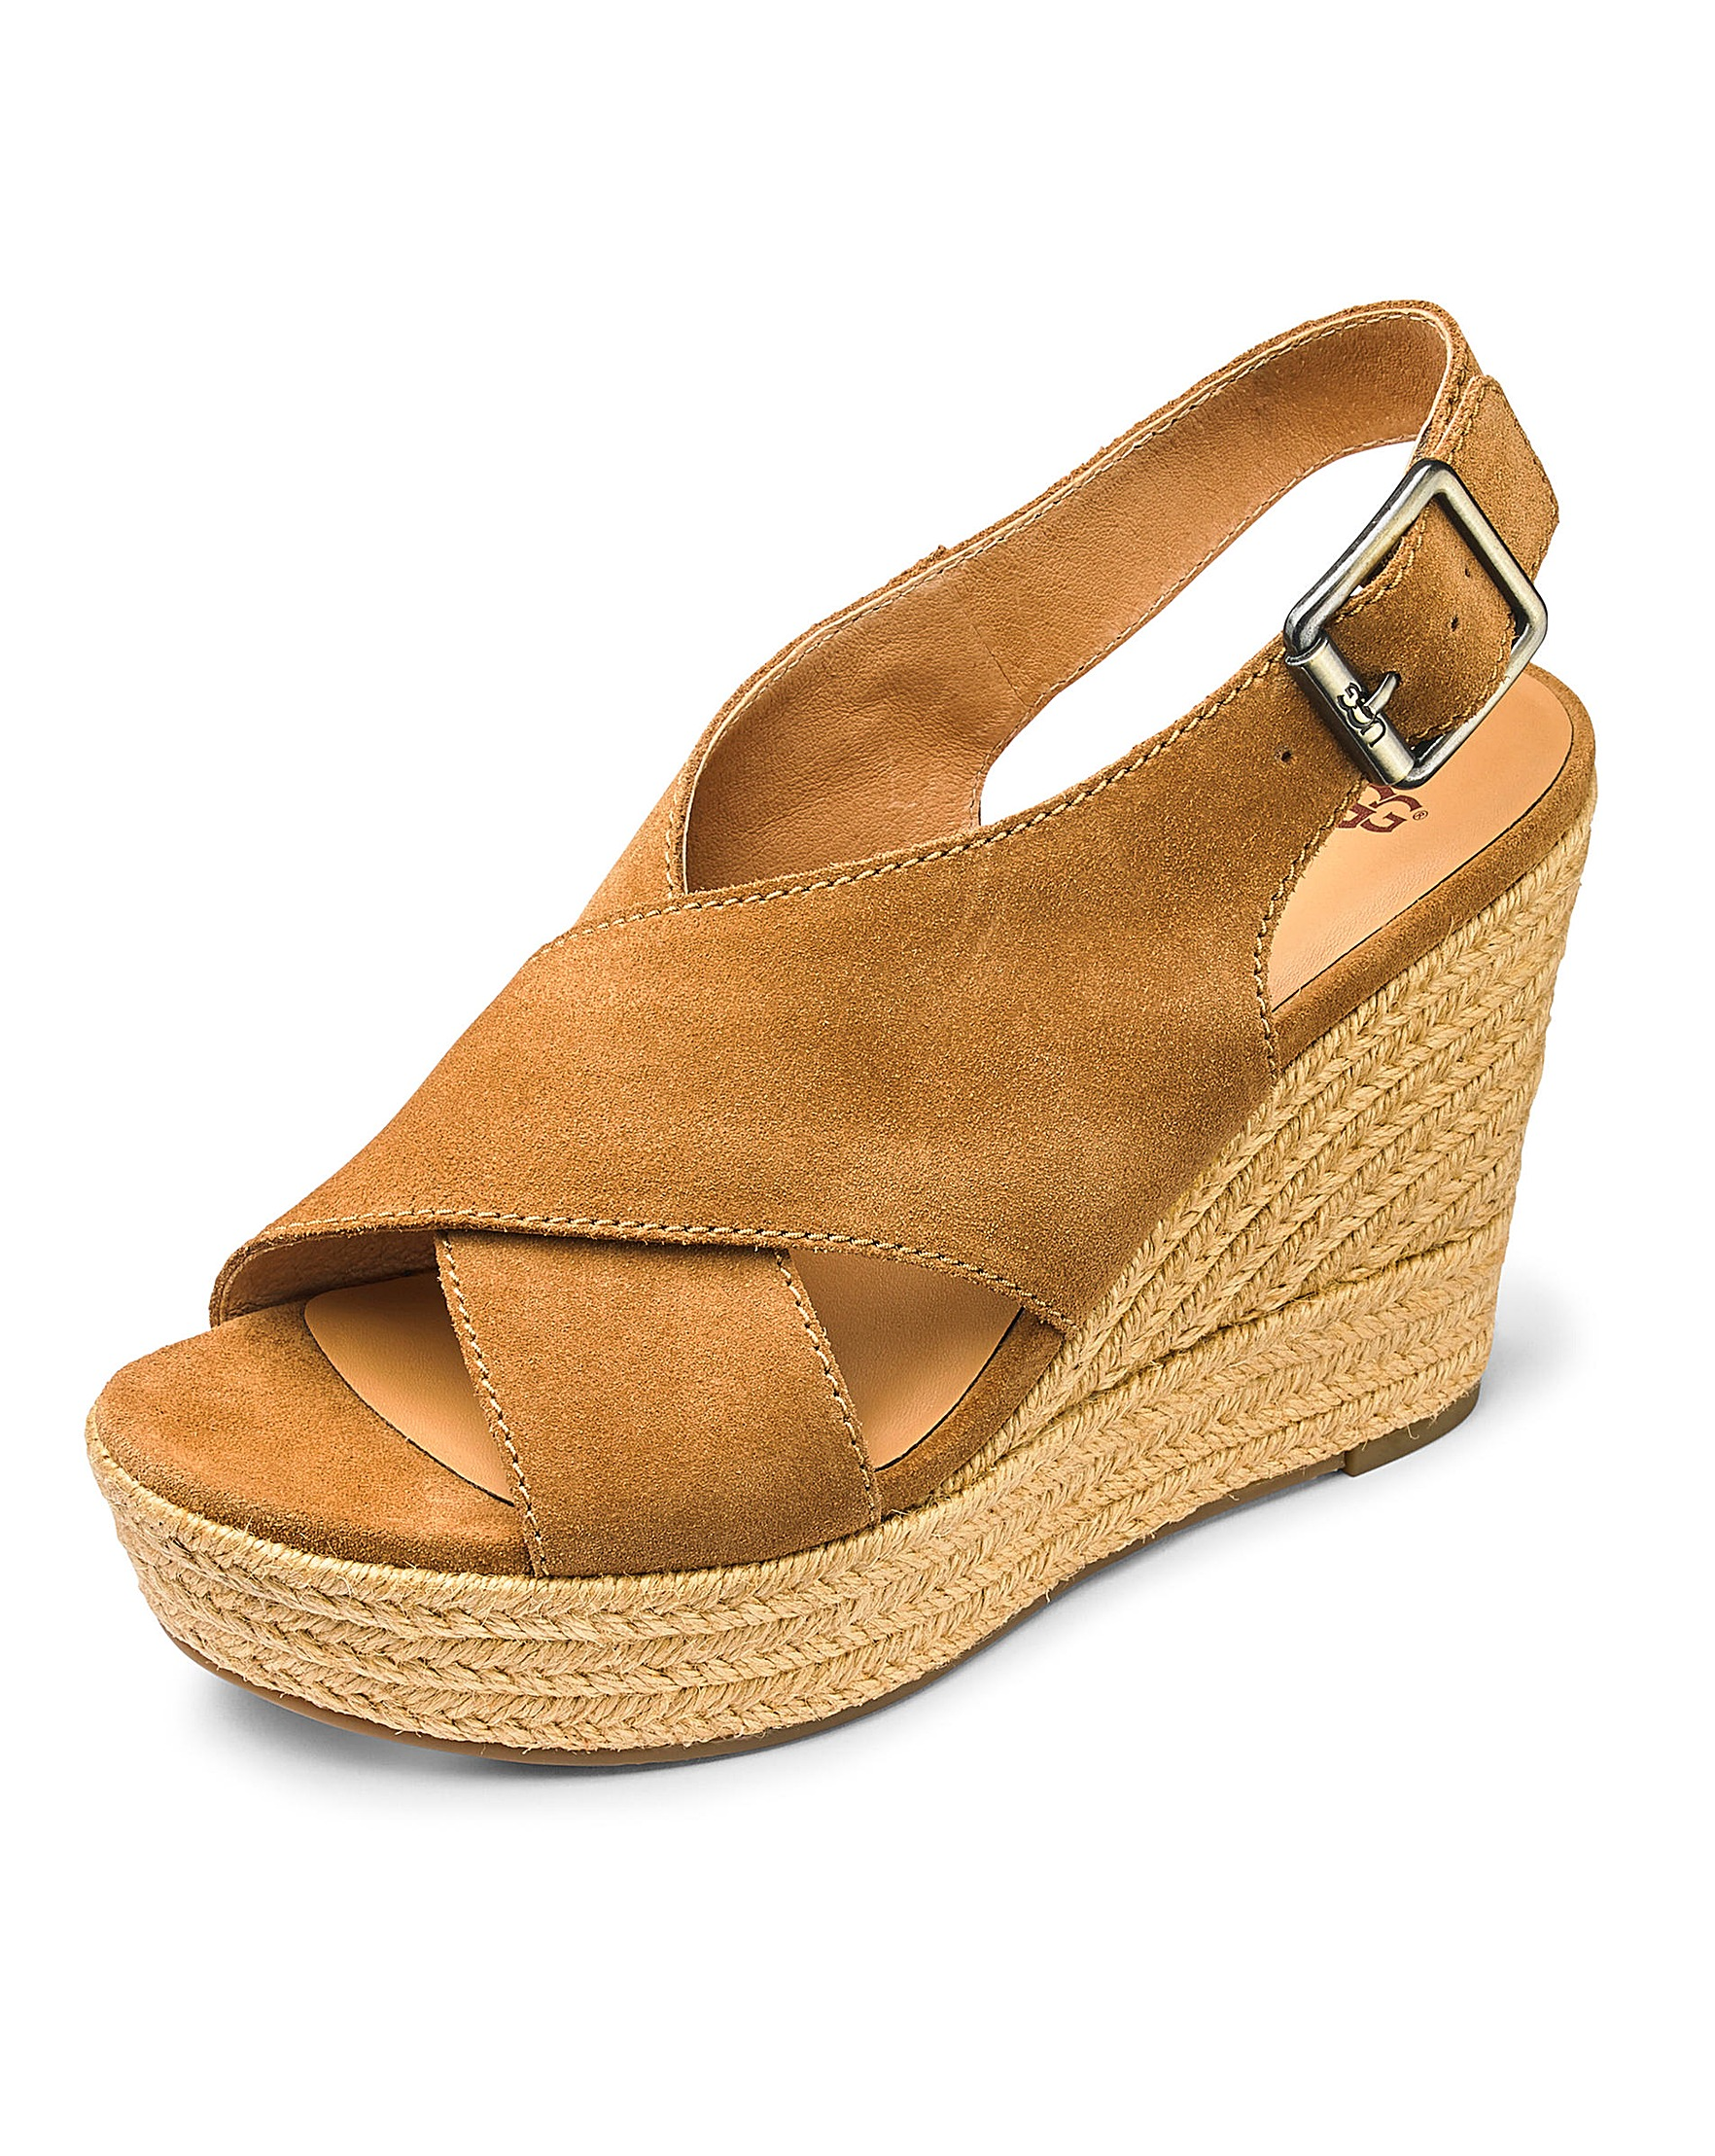 a5146eb2612 Ugg Harlow Suede Espadrille Wedge